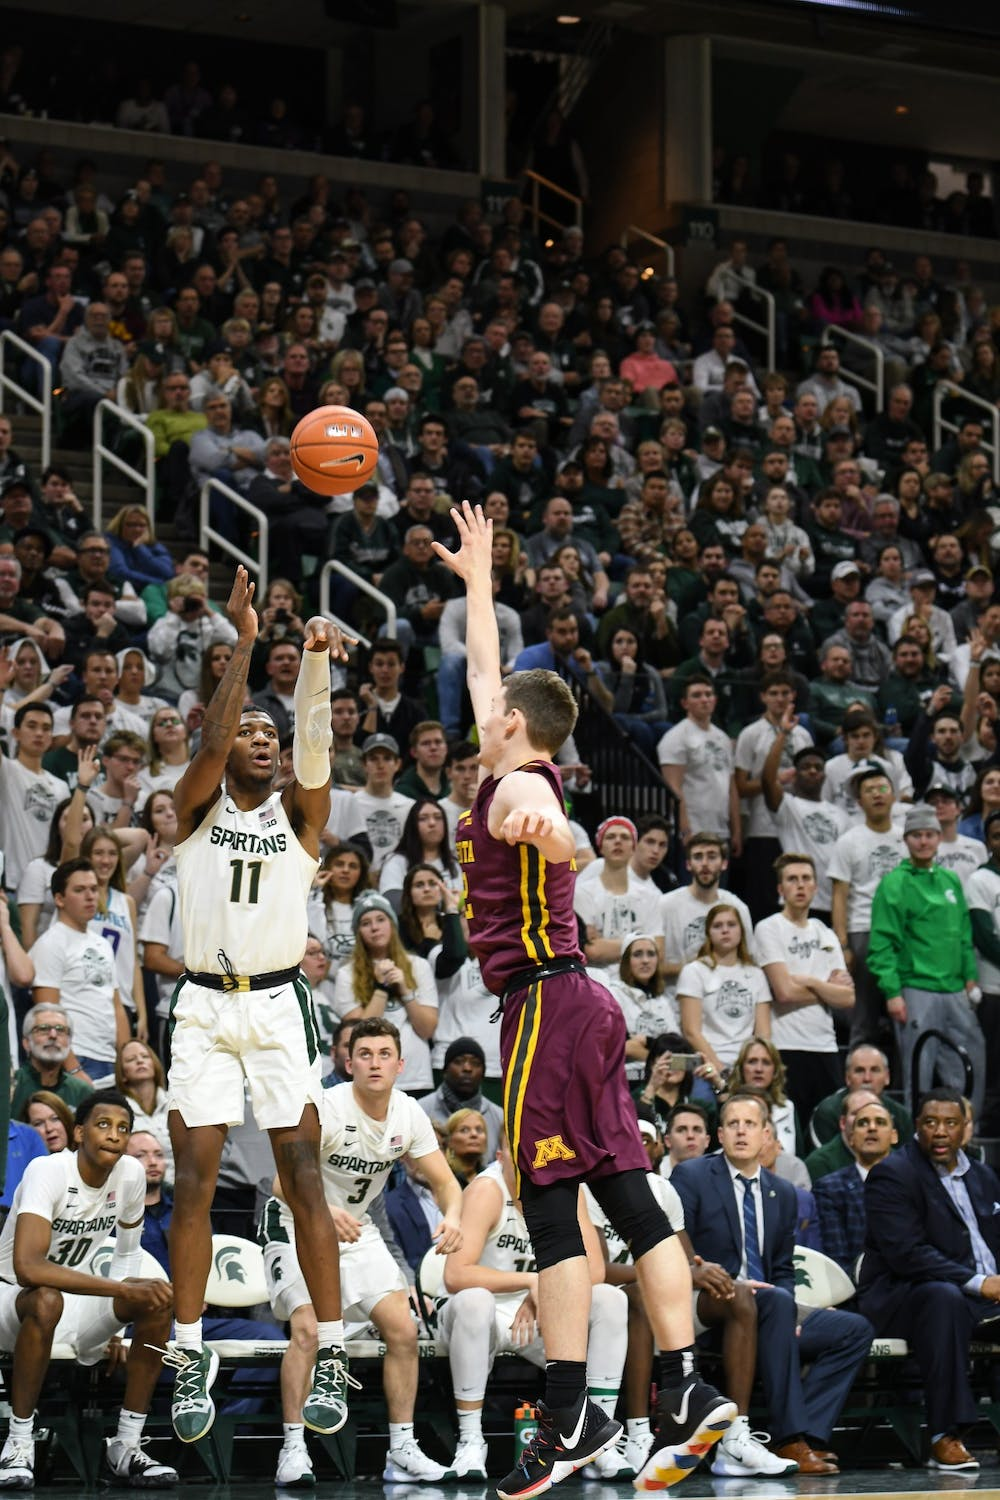 <p>Sophomore forward Aaron Henry (11) takes a shot during the game against Minnesota on Jan. 9, 2020, at the Breslin Center. The Spartans defeated the Golden Gophers, 74-58.</p>